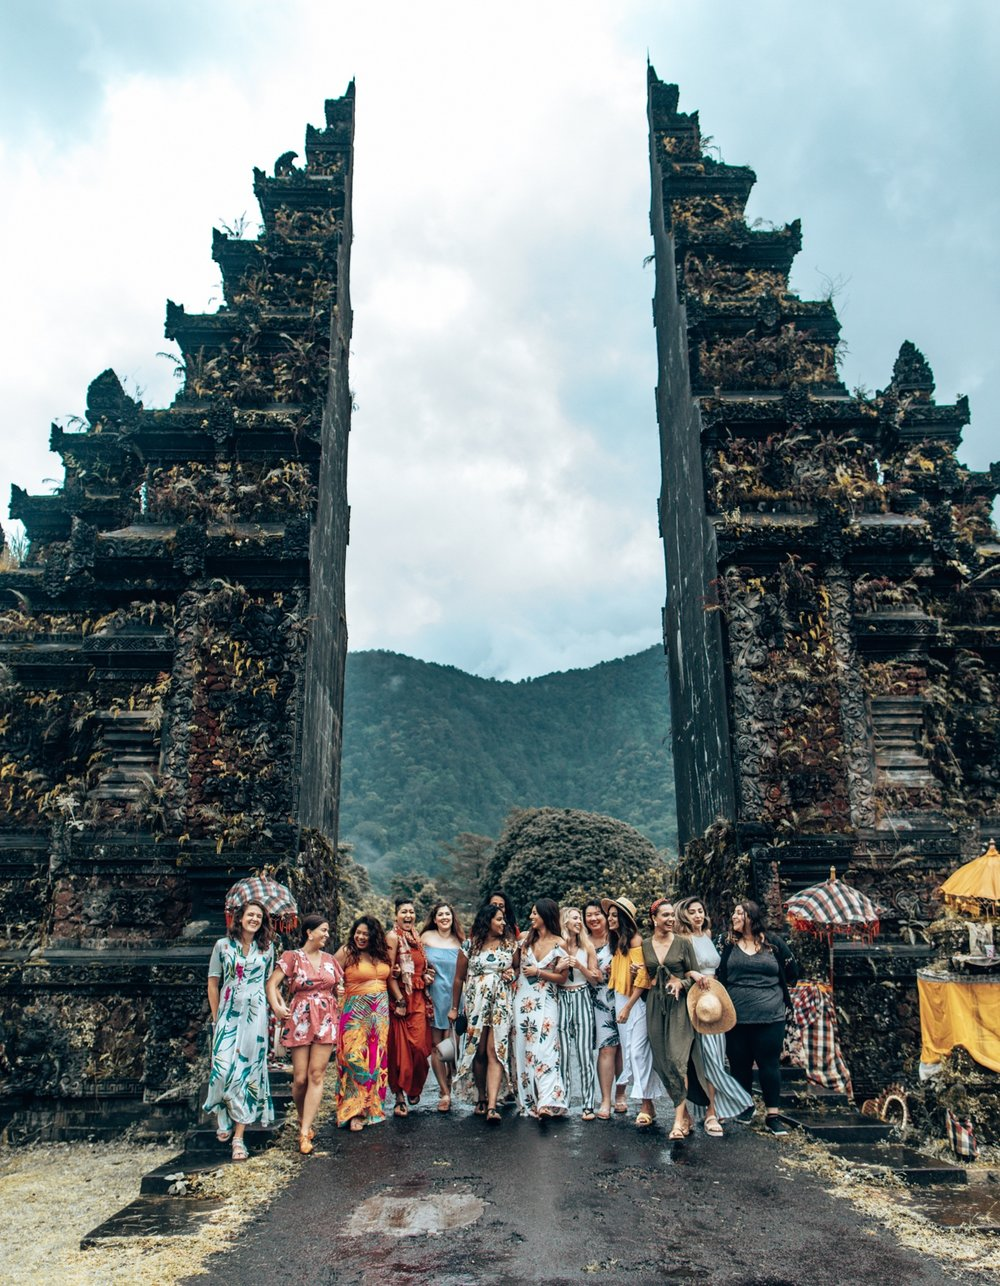 August 3 - August 10, 2020 - 7 nights / 8 daysGroup Size: 16*14 Spots Open*Bali is the ULTIMATE bucket list destination for every girl. Lucky for you we are taking The Girls Trip back to one of the most breathtaking islands in the world. Join us as we explore the Balinese culture and visit some of the most beautiful sights on the island.We're talking about temples, waterfalls, food, and most of all, the people who make this island so beautiful. We will be taking you through an experience you will remember for a lifetime.Here's a little taste of what you can expect:*Boutique Private Villa with Pool, Beautiful Sunsets, and Picture Perfect Backdrops**An Experience Packed Itinerary Customized with Curated Excursions**Local and Specialty Dining Experiences*